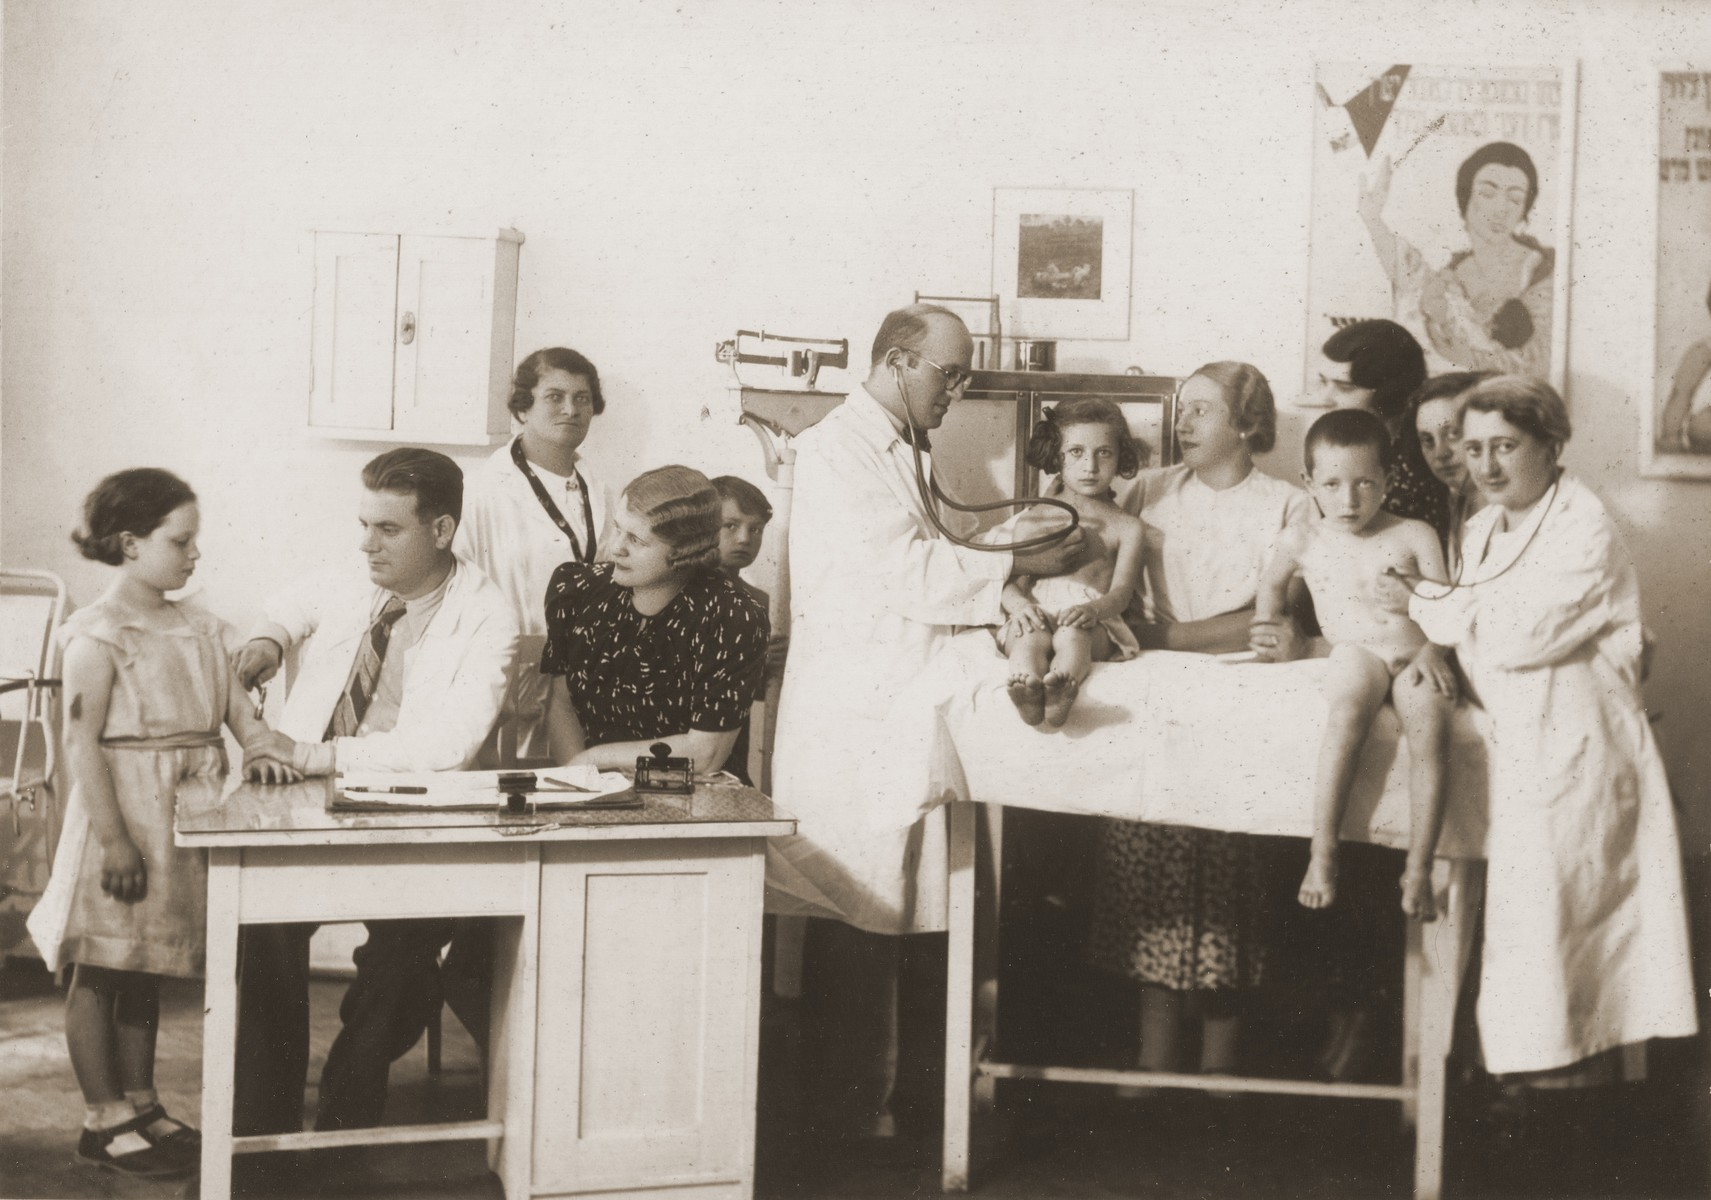 Doctors and nurses examine children in a pediatric clinic in Cernauti.    Among those pictured are Dr. Mendel Wiesenthal (center), Cernauti's most prominent Jewish pediatrician; Josephina Metsch Appenzeller (the donor's mother, who is looking at Wiesenthal); and Dr. Salick, a female pediatrician (far right).   The Yiddish poster on the wall, printed by OSE (Oeuvre secours aux enfants) extols the virtues of breast-feeding.